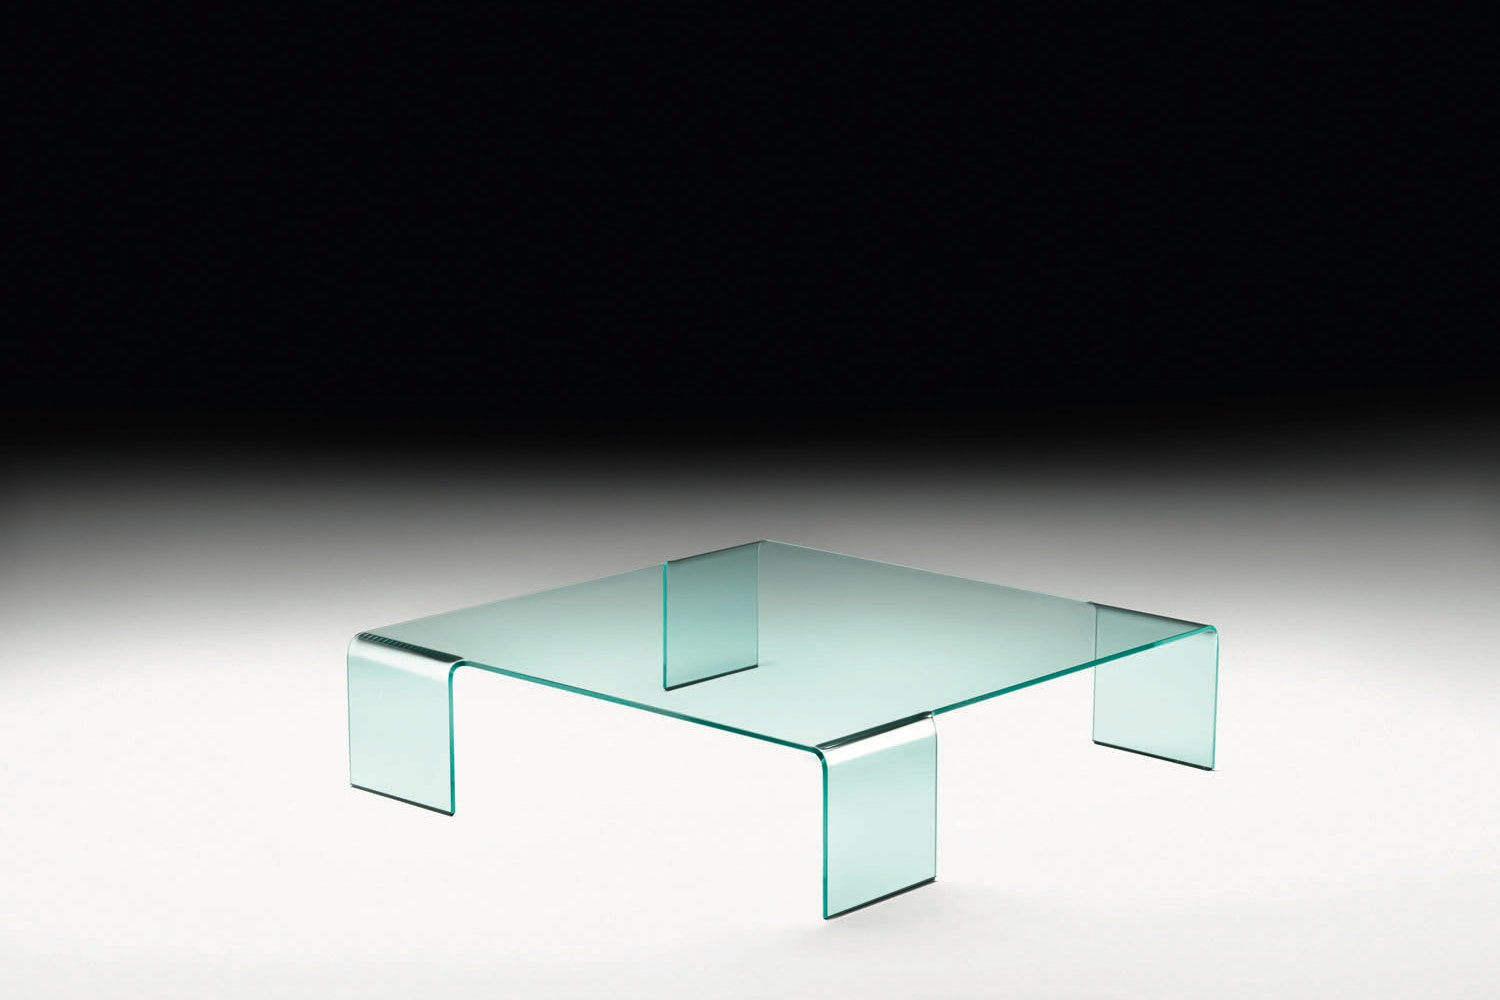 Neutra Coffee Table by Rodolfo Dordoni for Fiam Italia